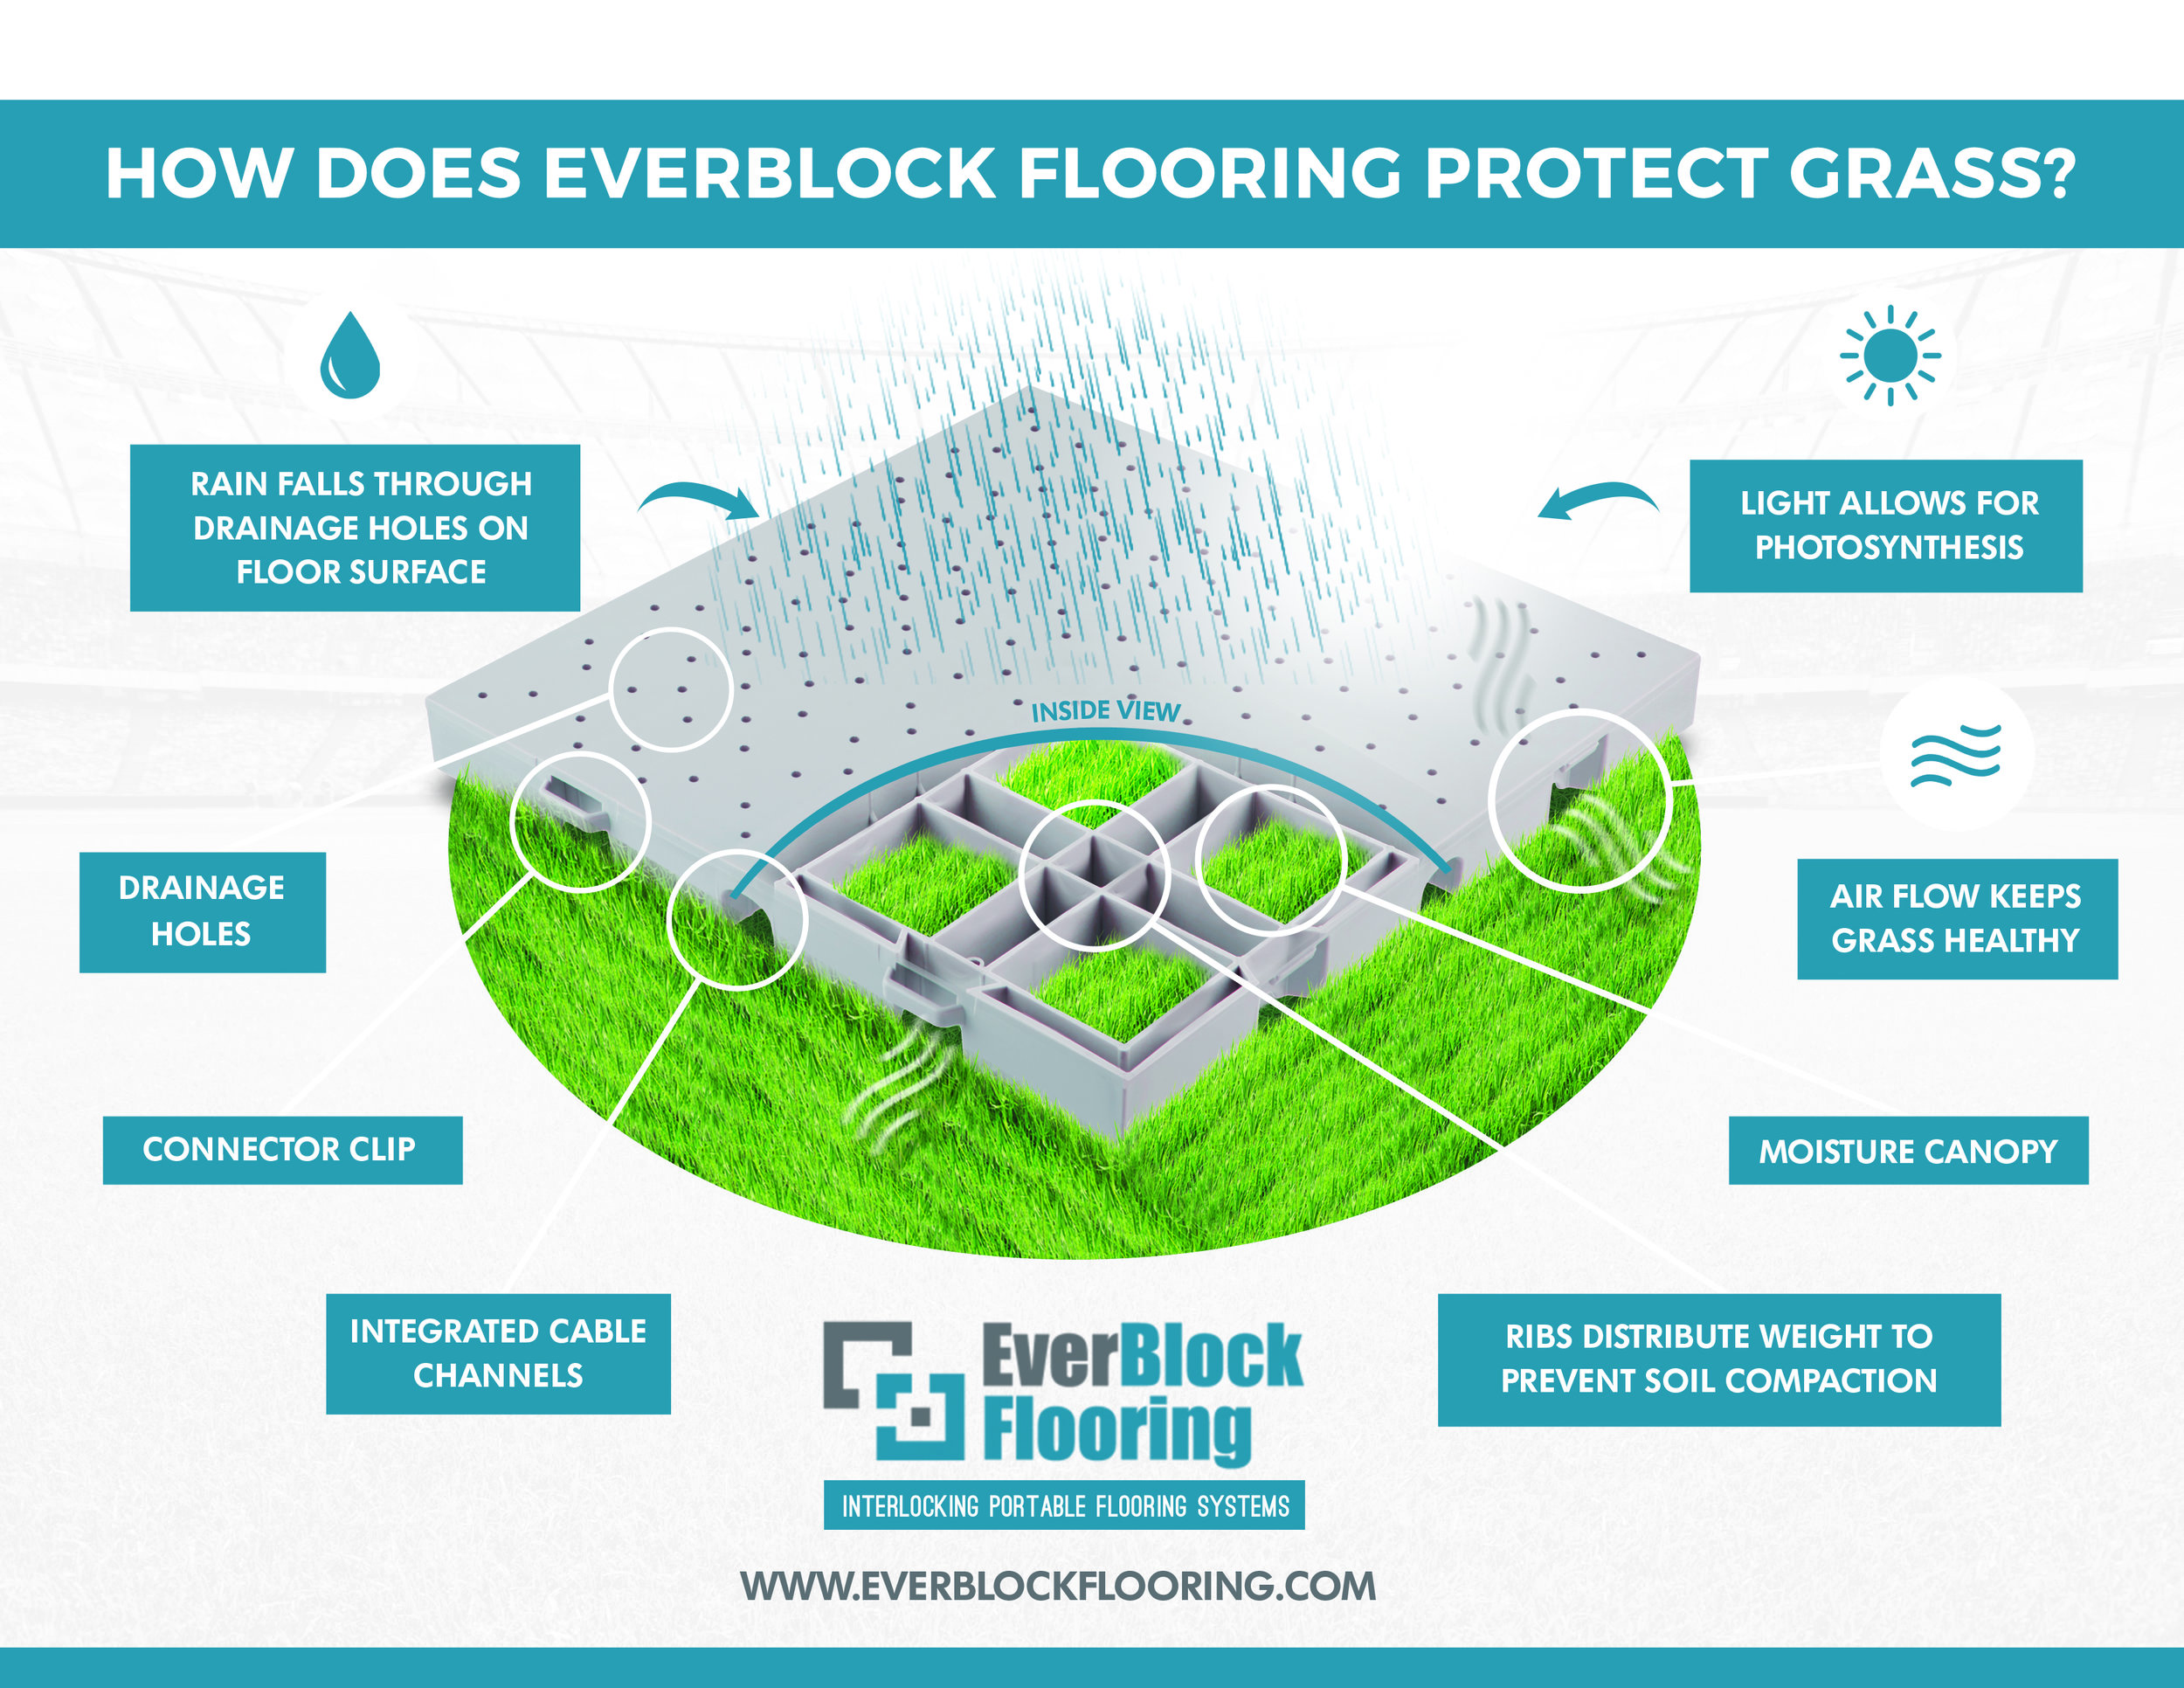 everblock flooring stadium turf and grass protection